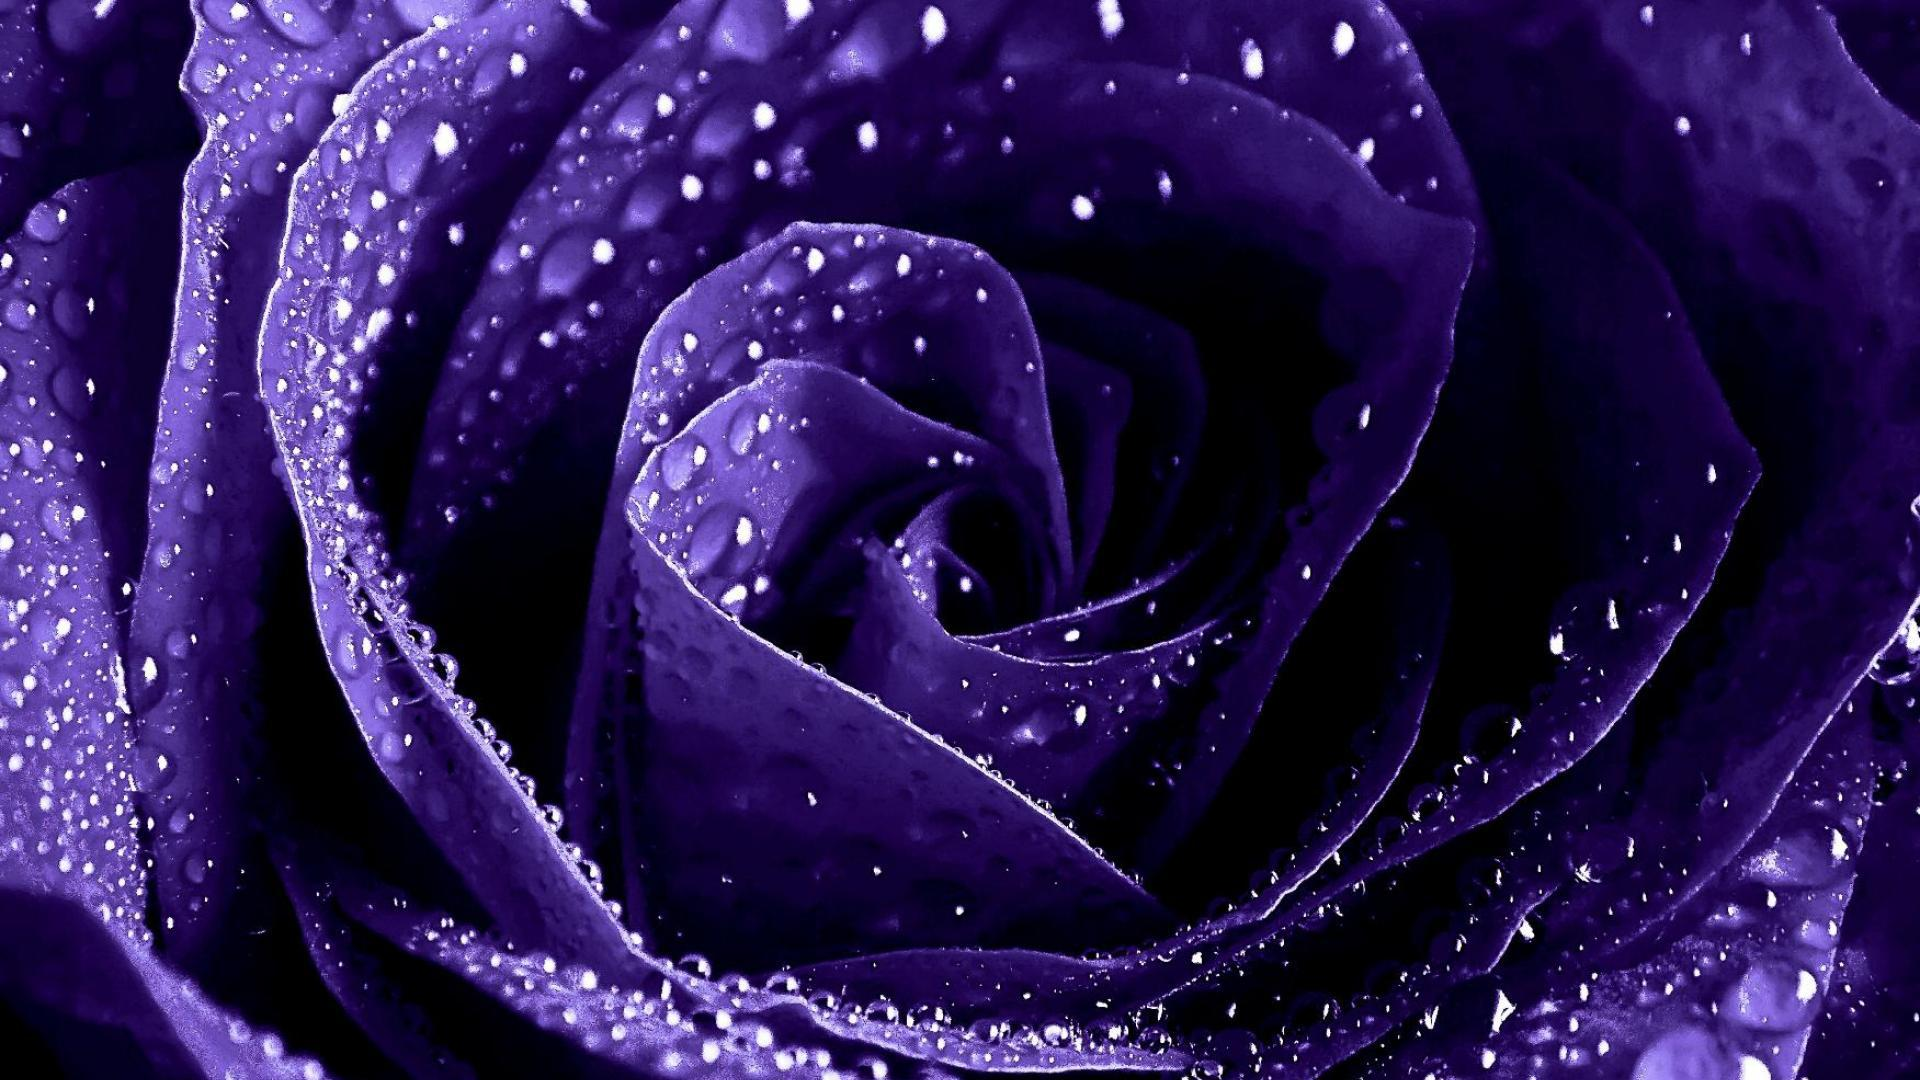 Most Inspiring Wallpaper High Quality Purple - purple-roses-wallpapers_110930552  Collection_1003150.jpg